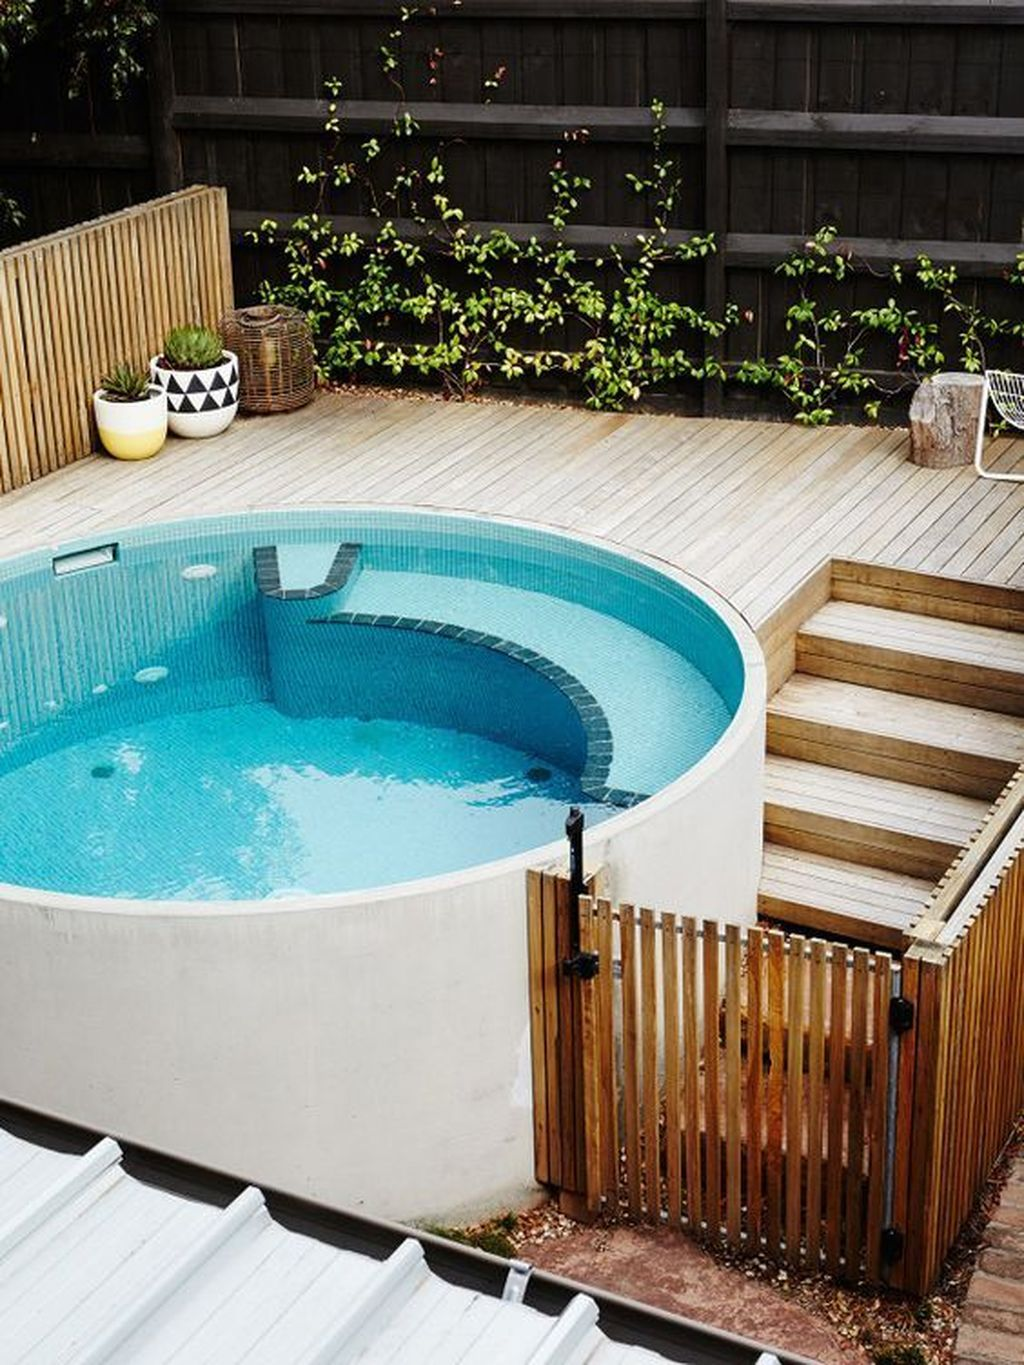 Cool 35 Cozy Swimming Pool Design Ideas For Your Home Backyard More At Https Homishome Com 20 Swimming Pools Backyard Small Pool Design Small Backyard Pools